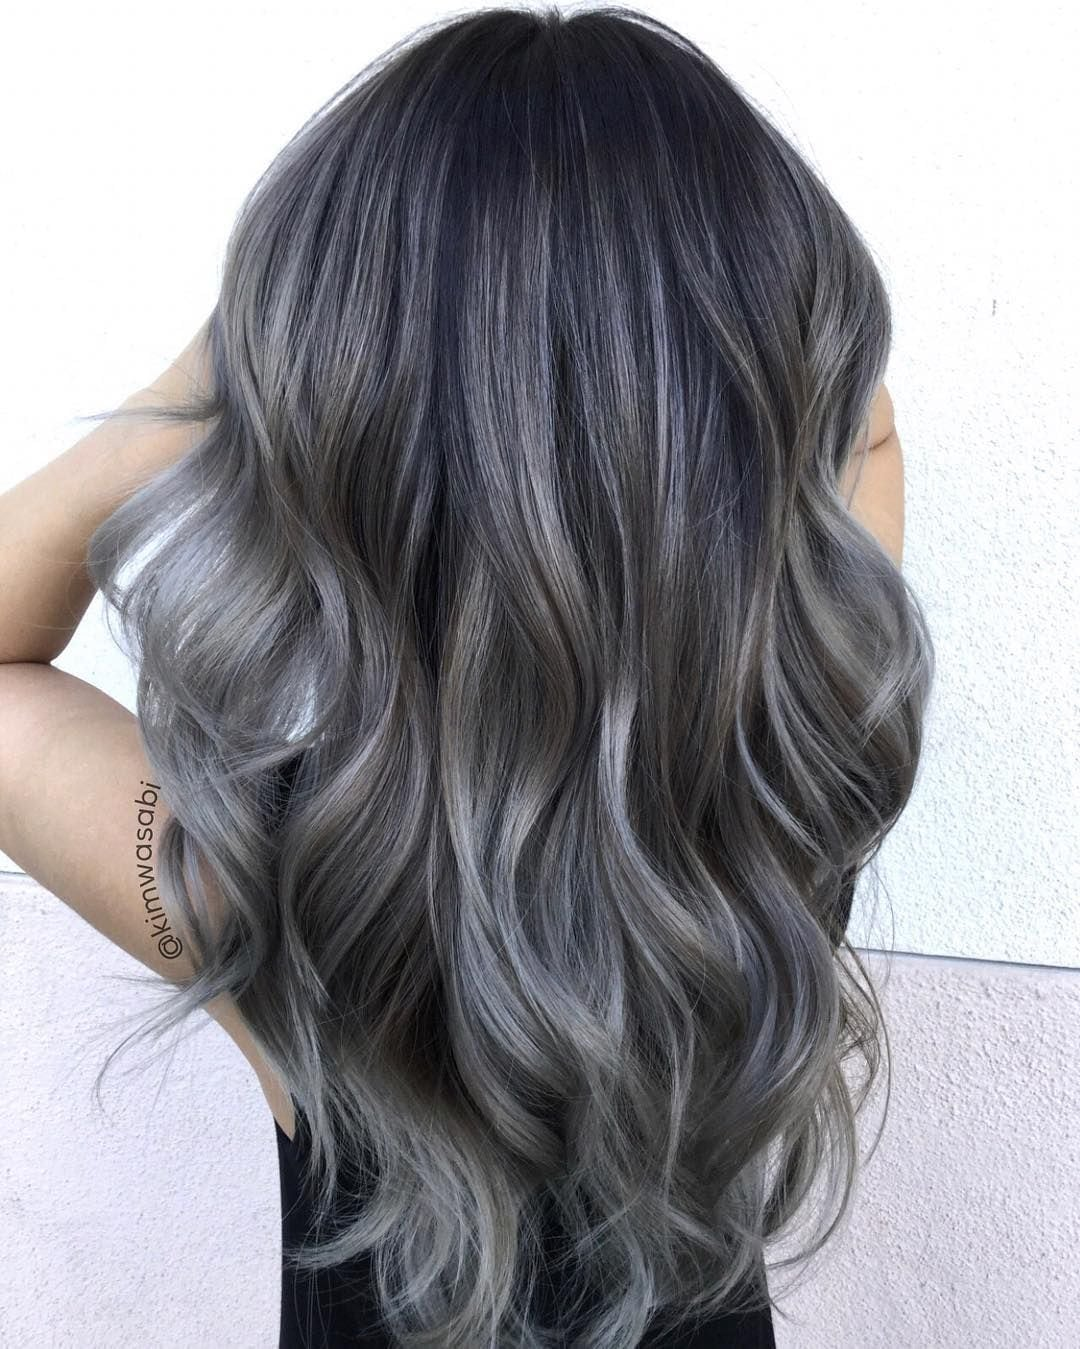 Pink Hair Stylist As Well How To Get Gray Hair Color